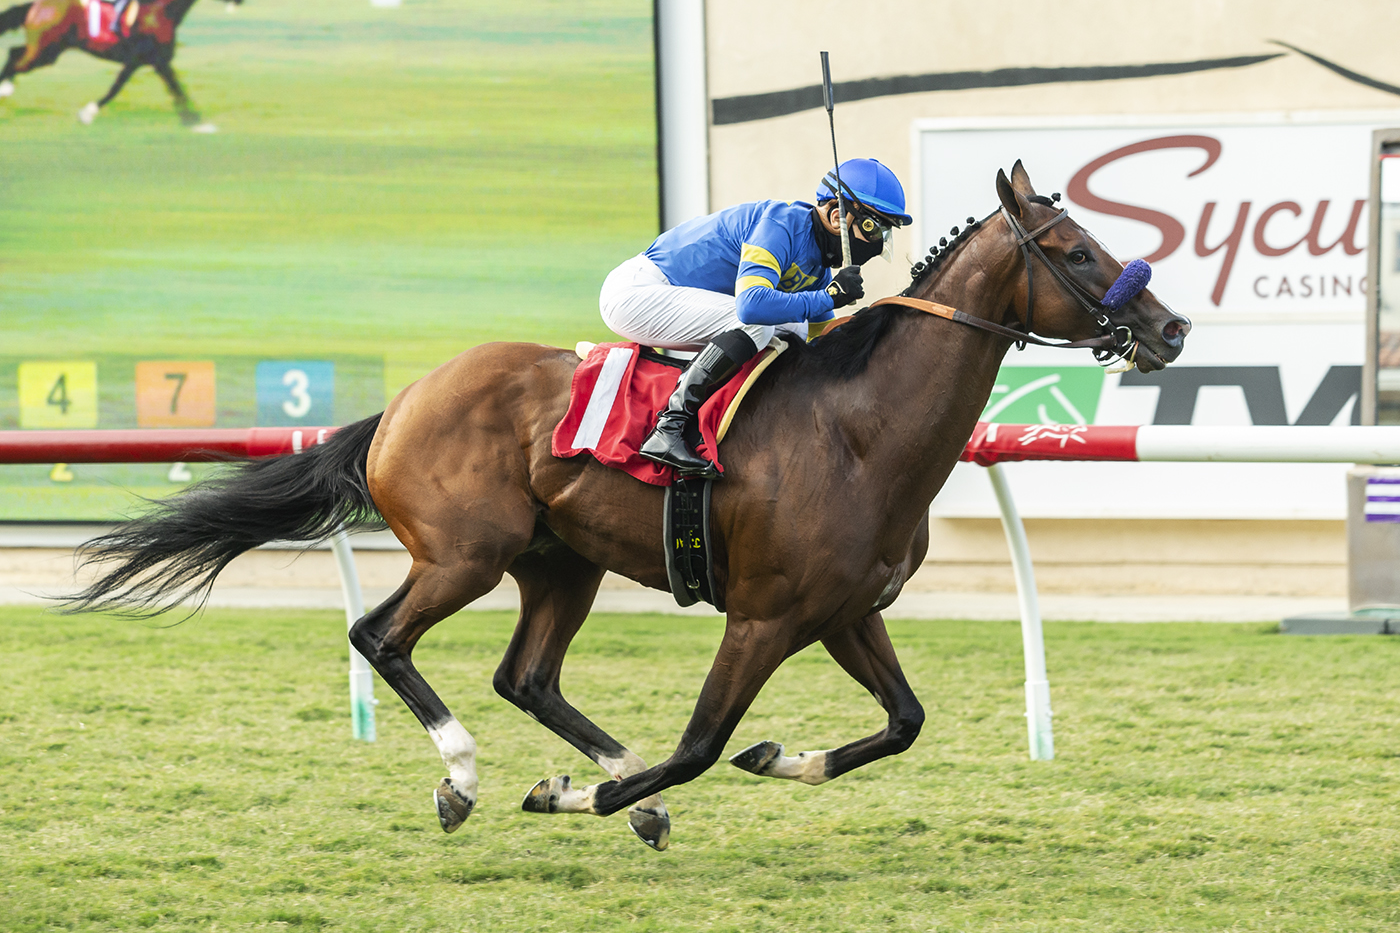 Photo of Order and Law Wire to Wire to Tally at Del Mar Monday